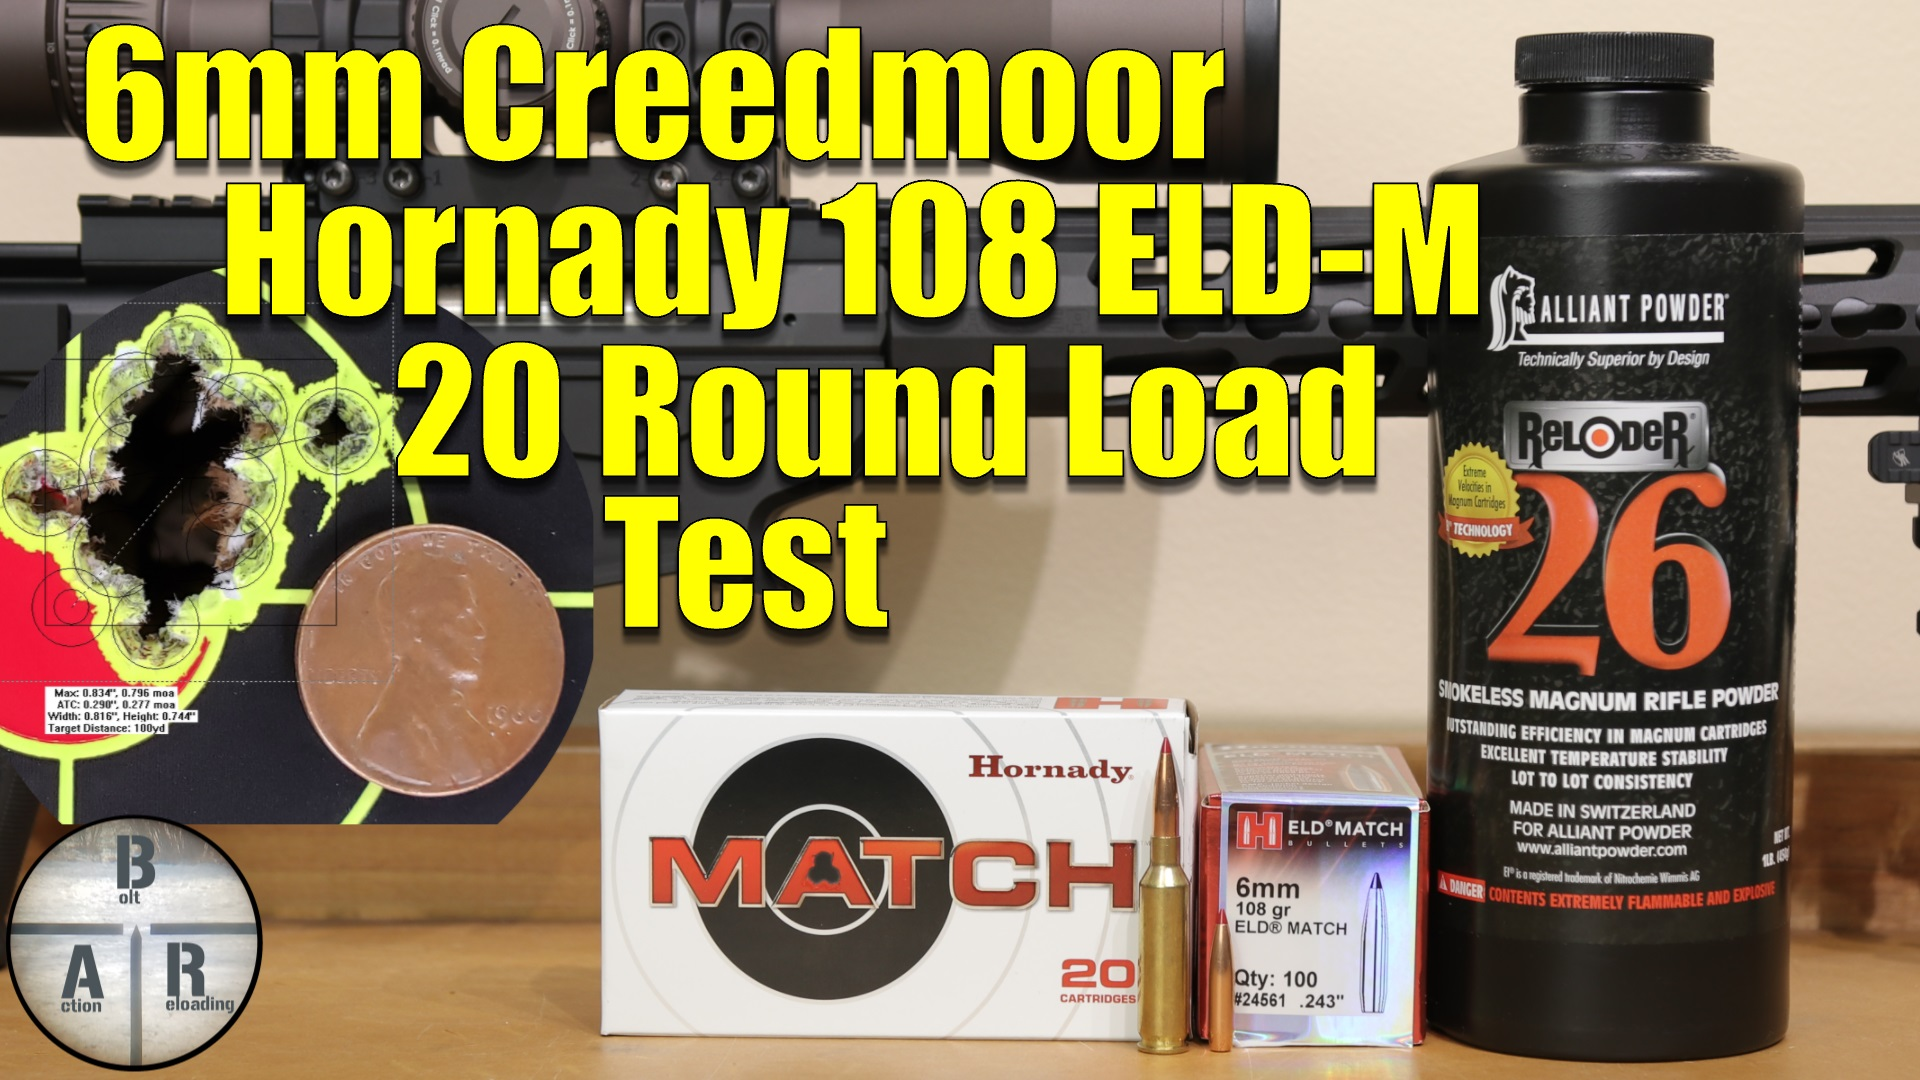 6.5 Creedmoor - Trying for higher velocities with Hornady 147 gr ELD-M with Alliant Reloder 26 3